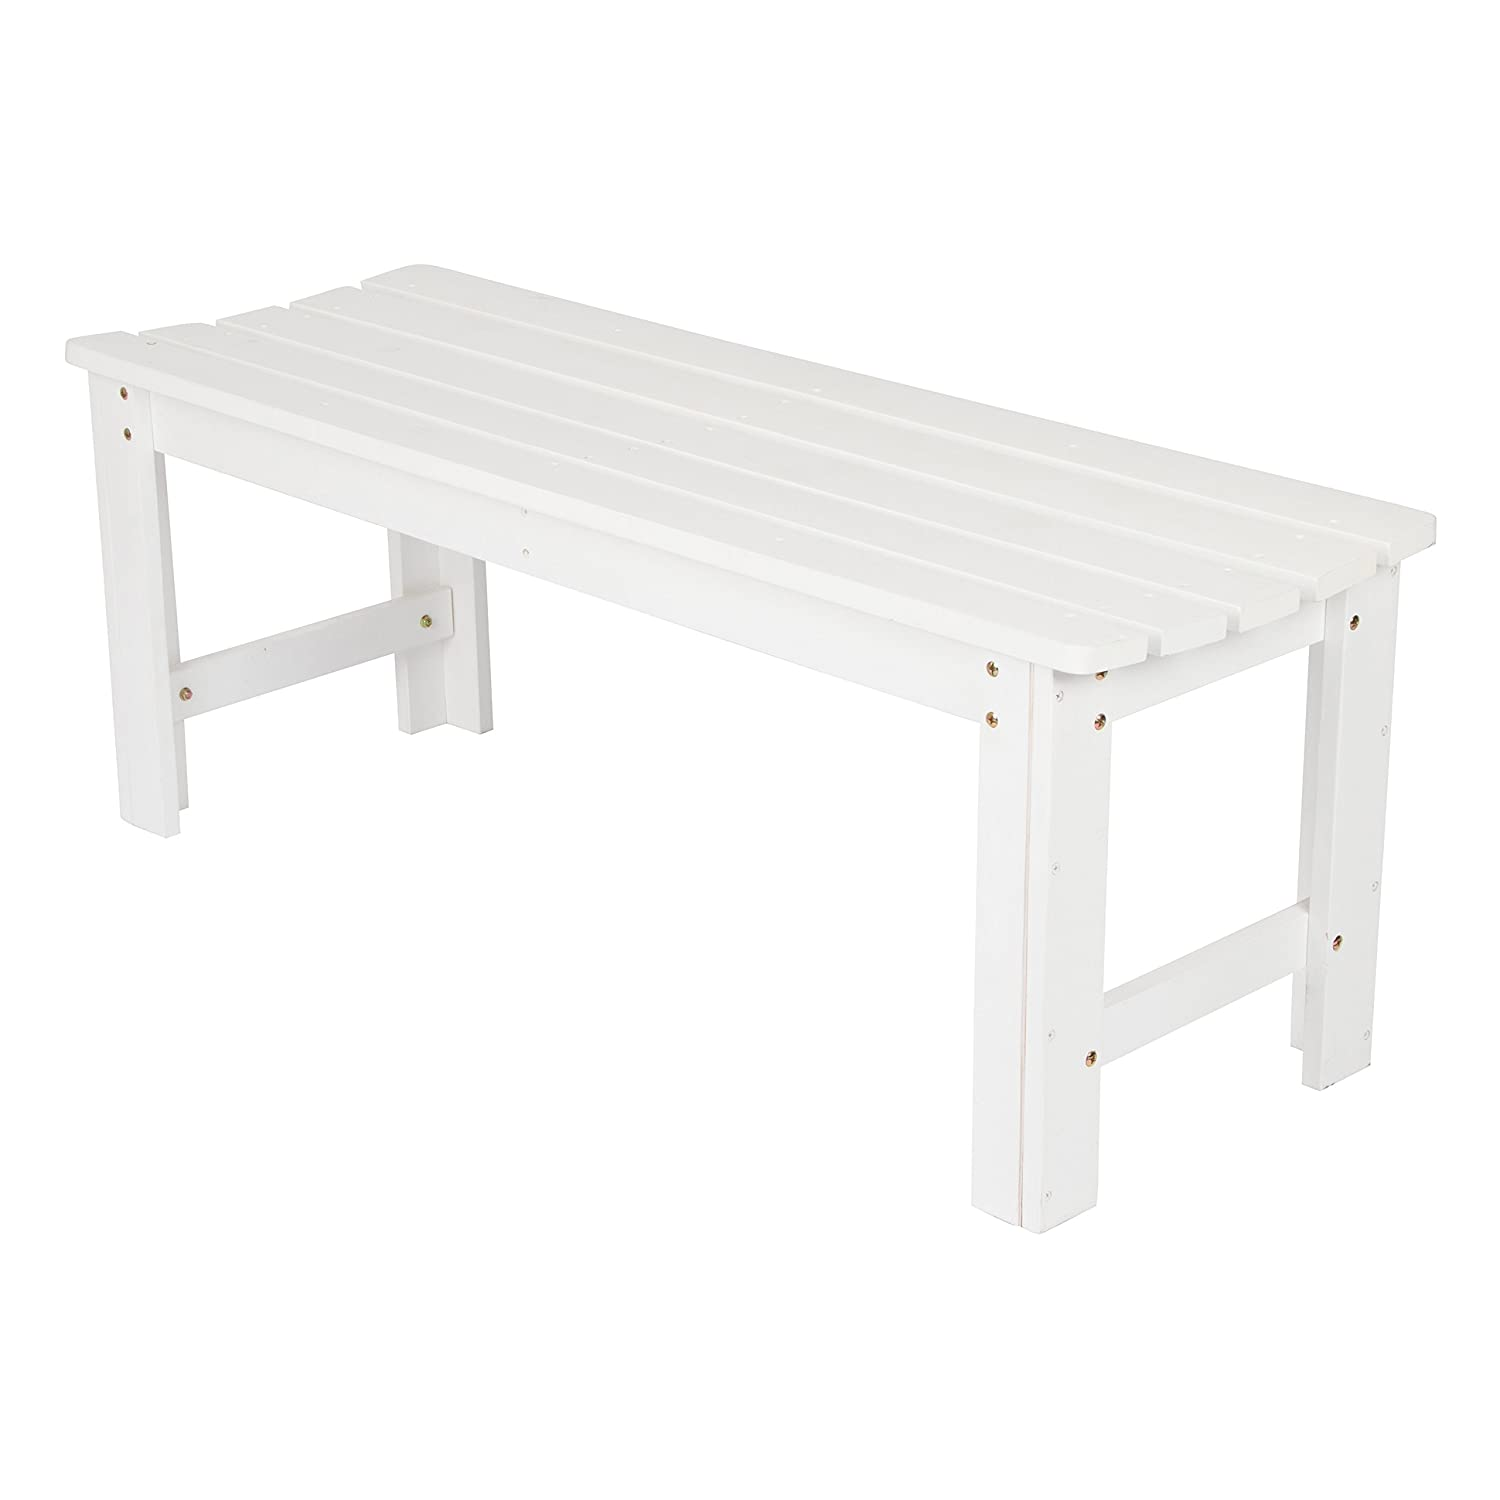 Shine Company Backless Garden Bench, 4-Feet, White 4204WT